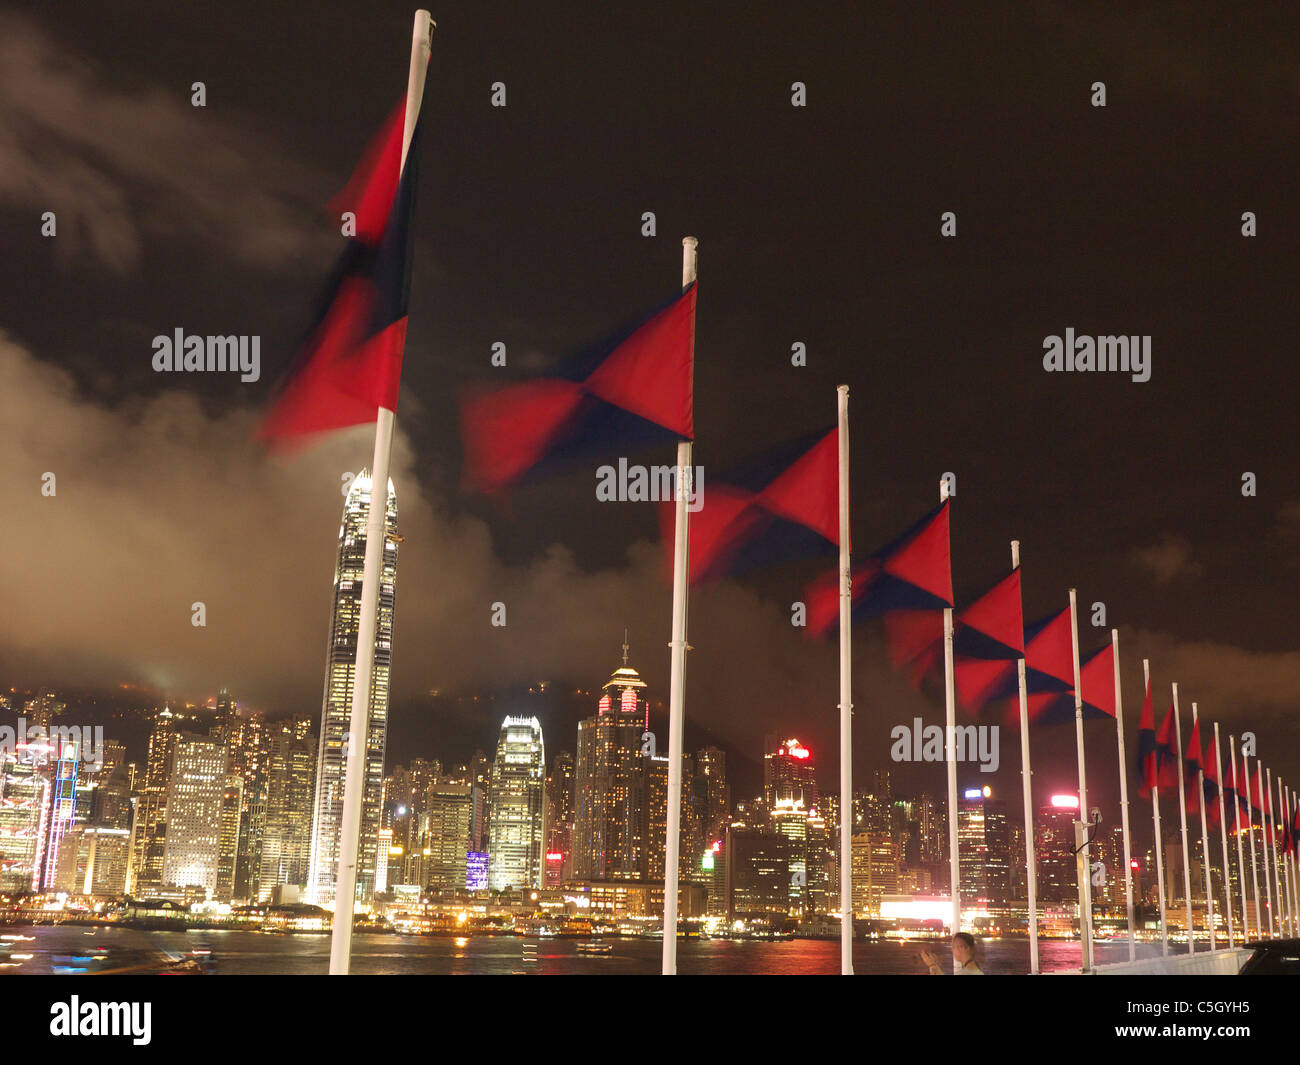 View looking up at a line of colourful flags flying in the wind with Hong Kong Island  in the background at night Stock Photo